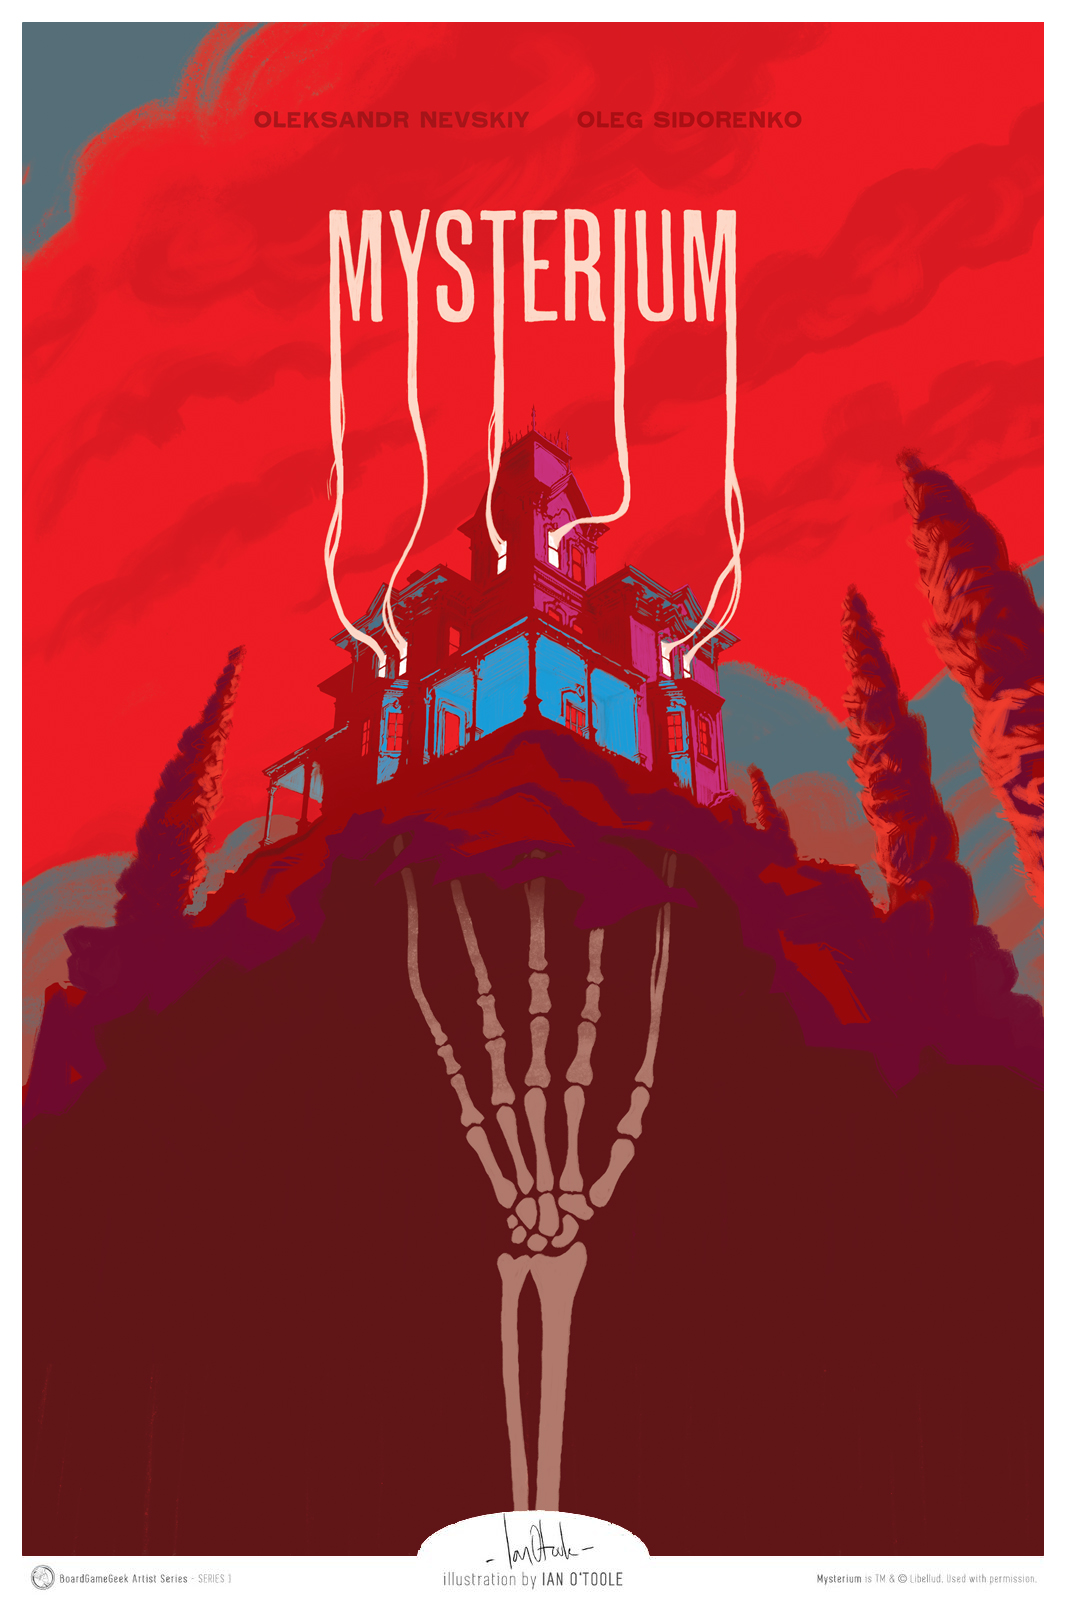 Mysterium Poster - part of the BoardGameGeek Artist Series